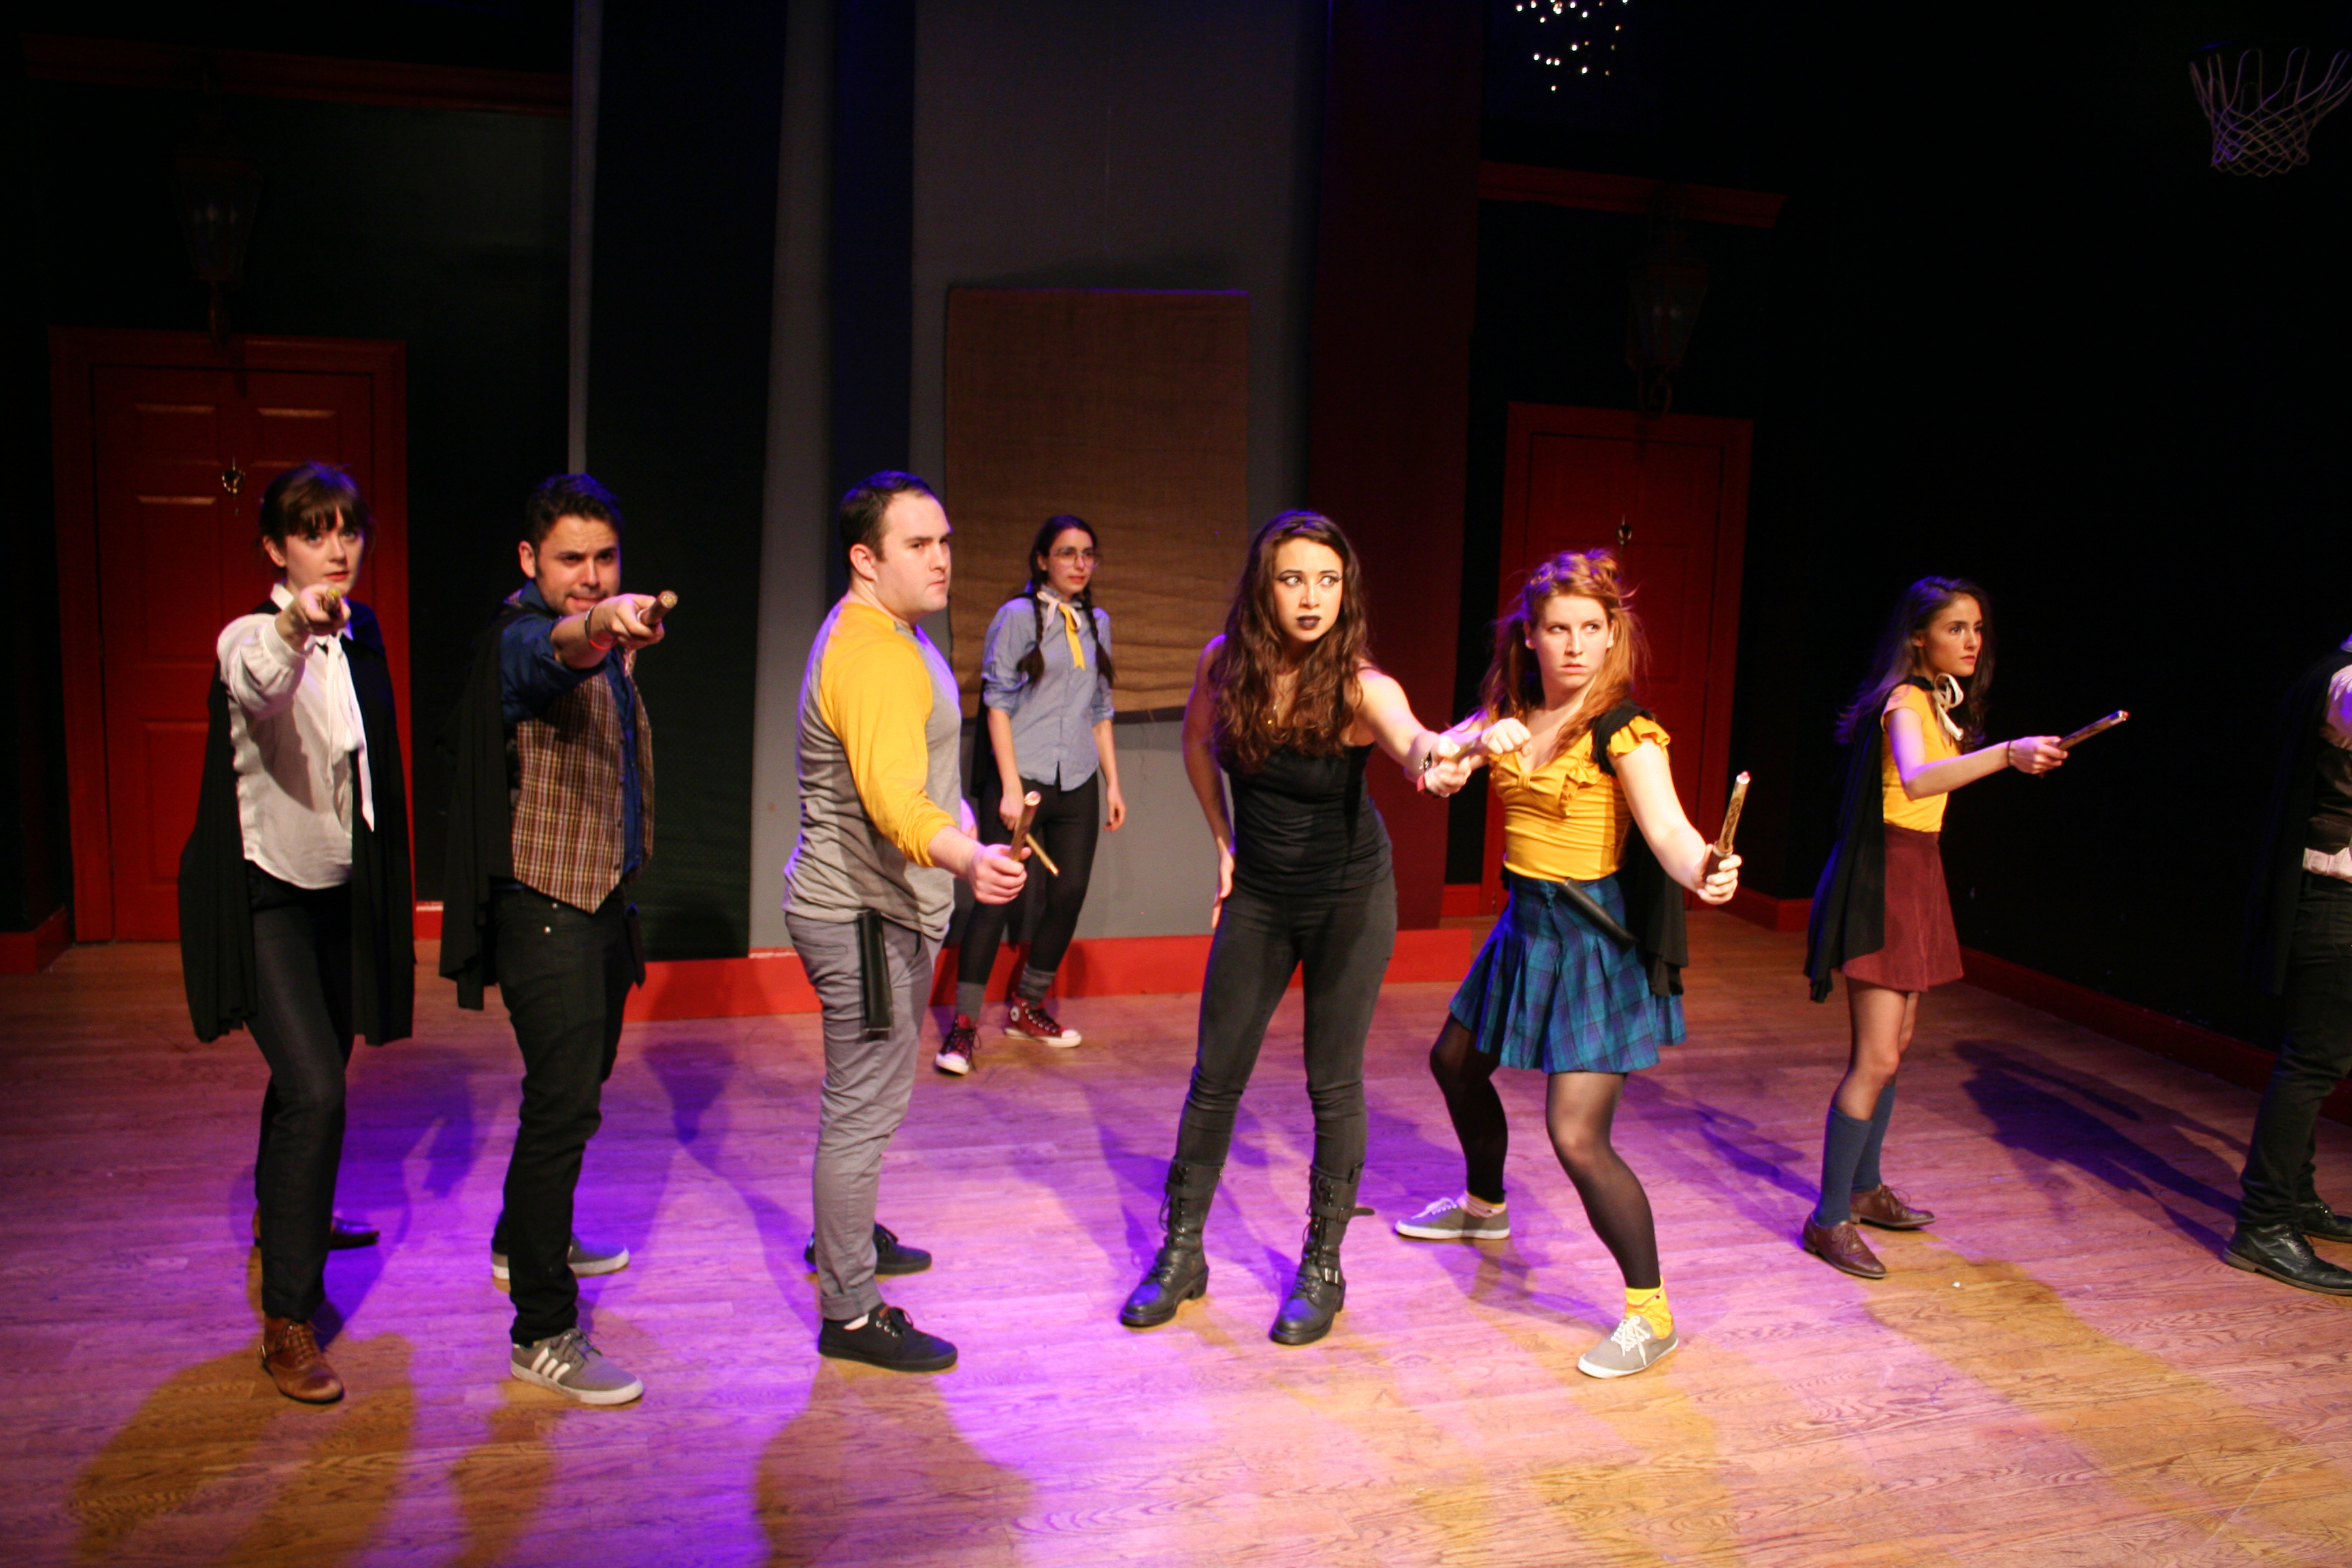 IMG - PUFFS - The Puffs going to war-The Company-Photo by Colin Waitt.jpg